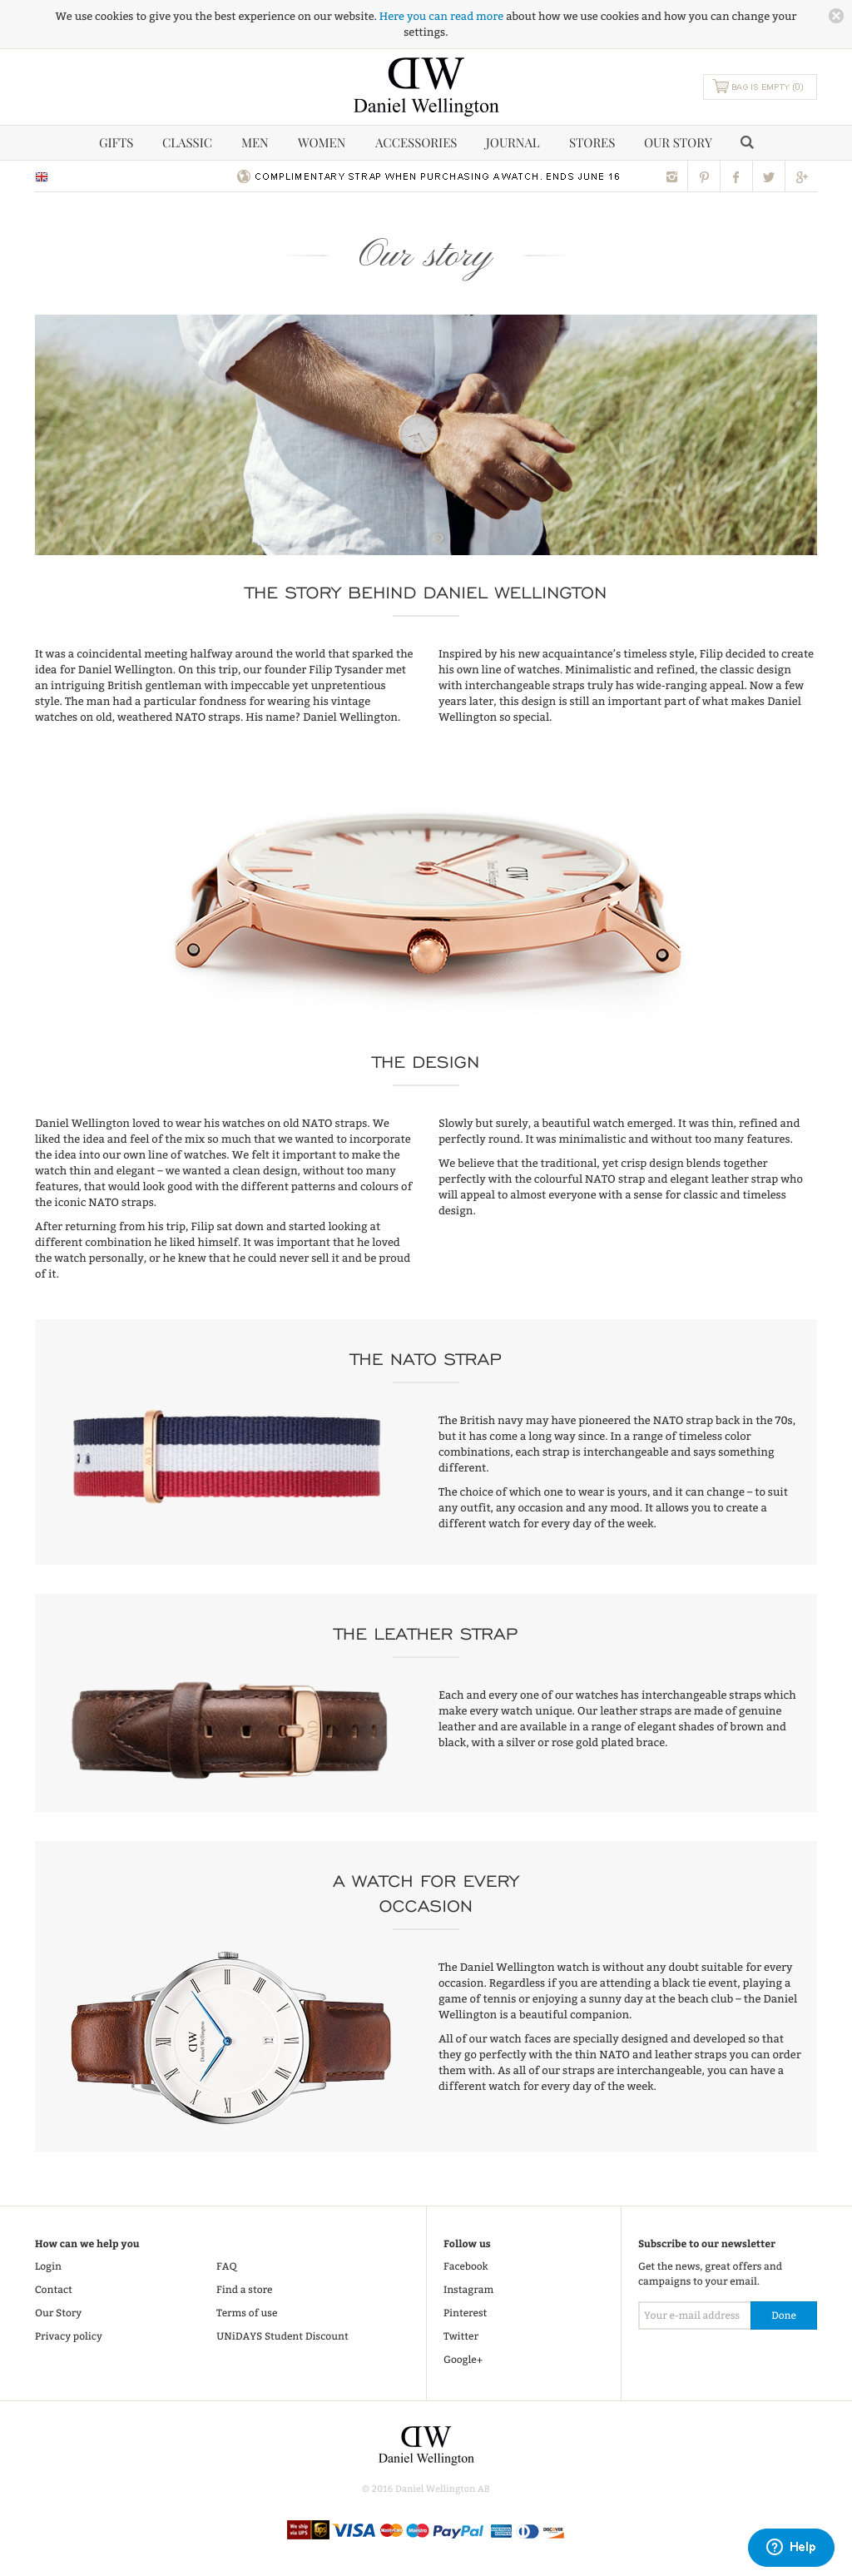 Daniel Wellington About page